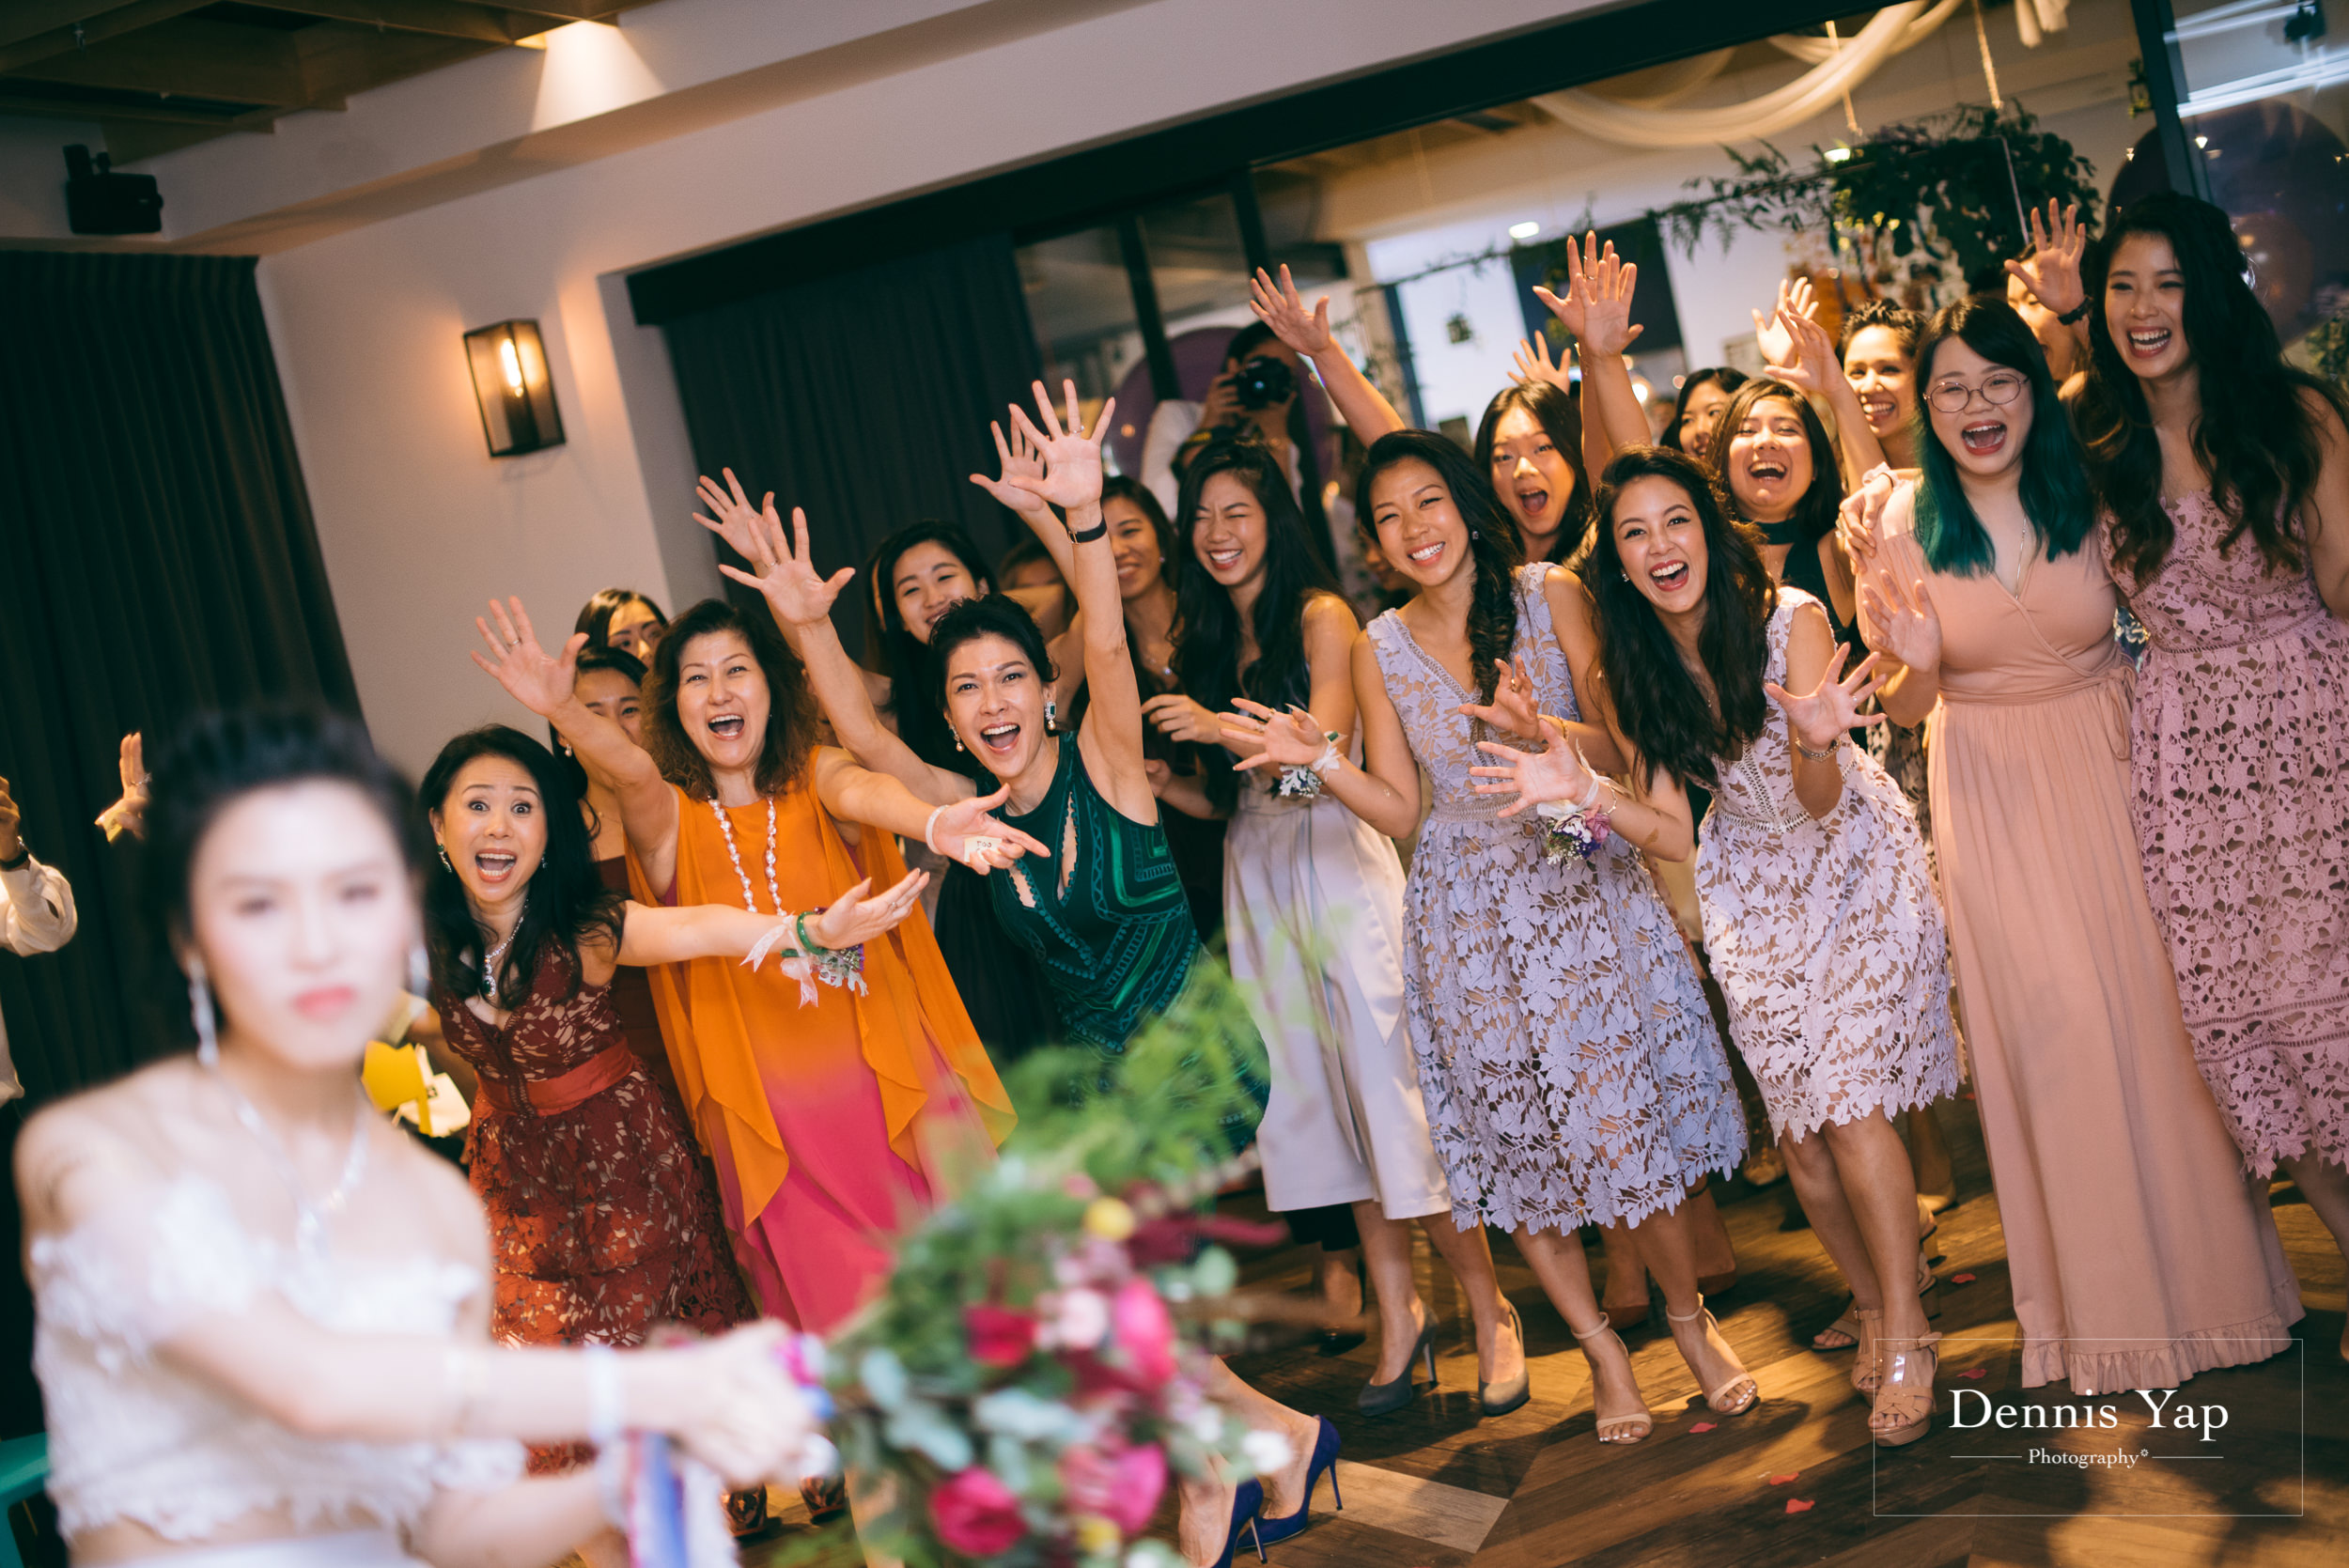 ser siang sze liang rom registration of marriage KL journal hotel dennis yap photography-31.jpg